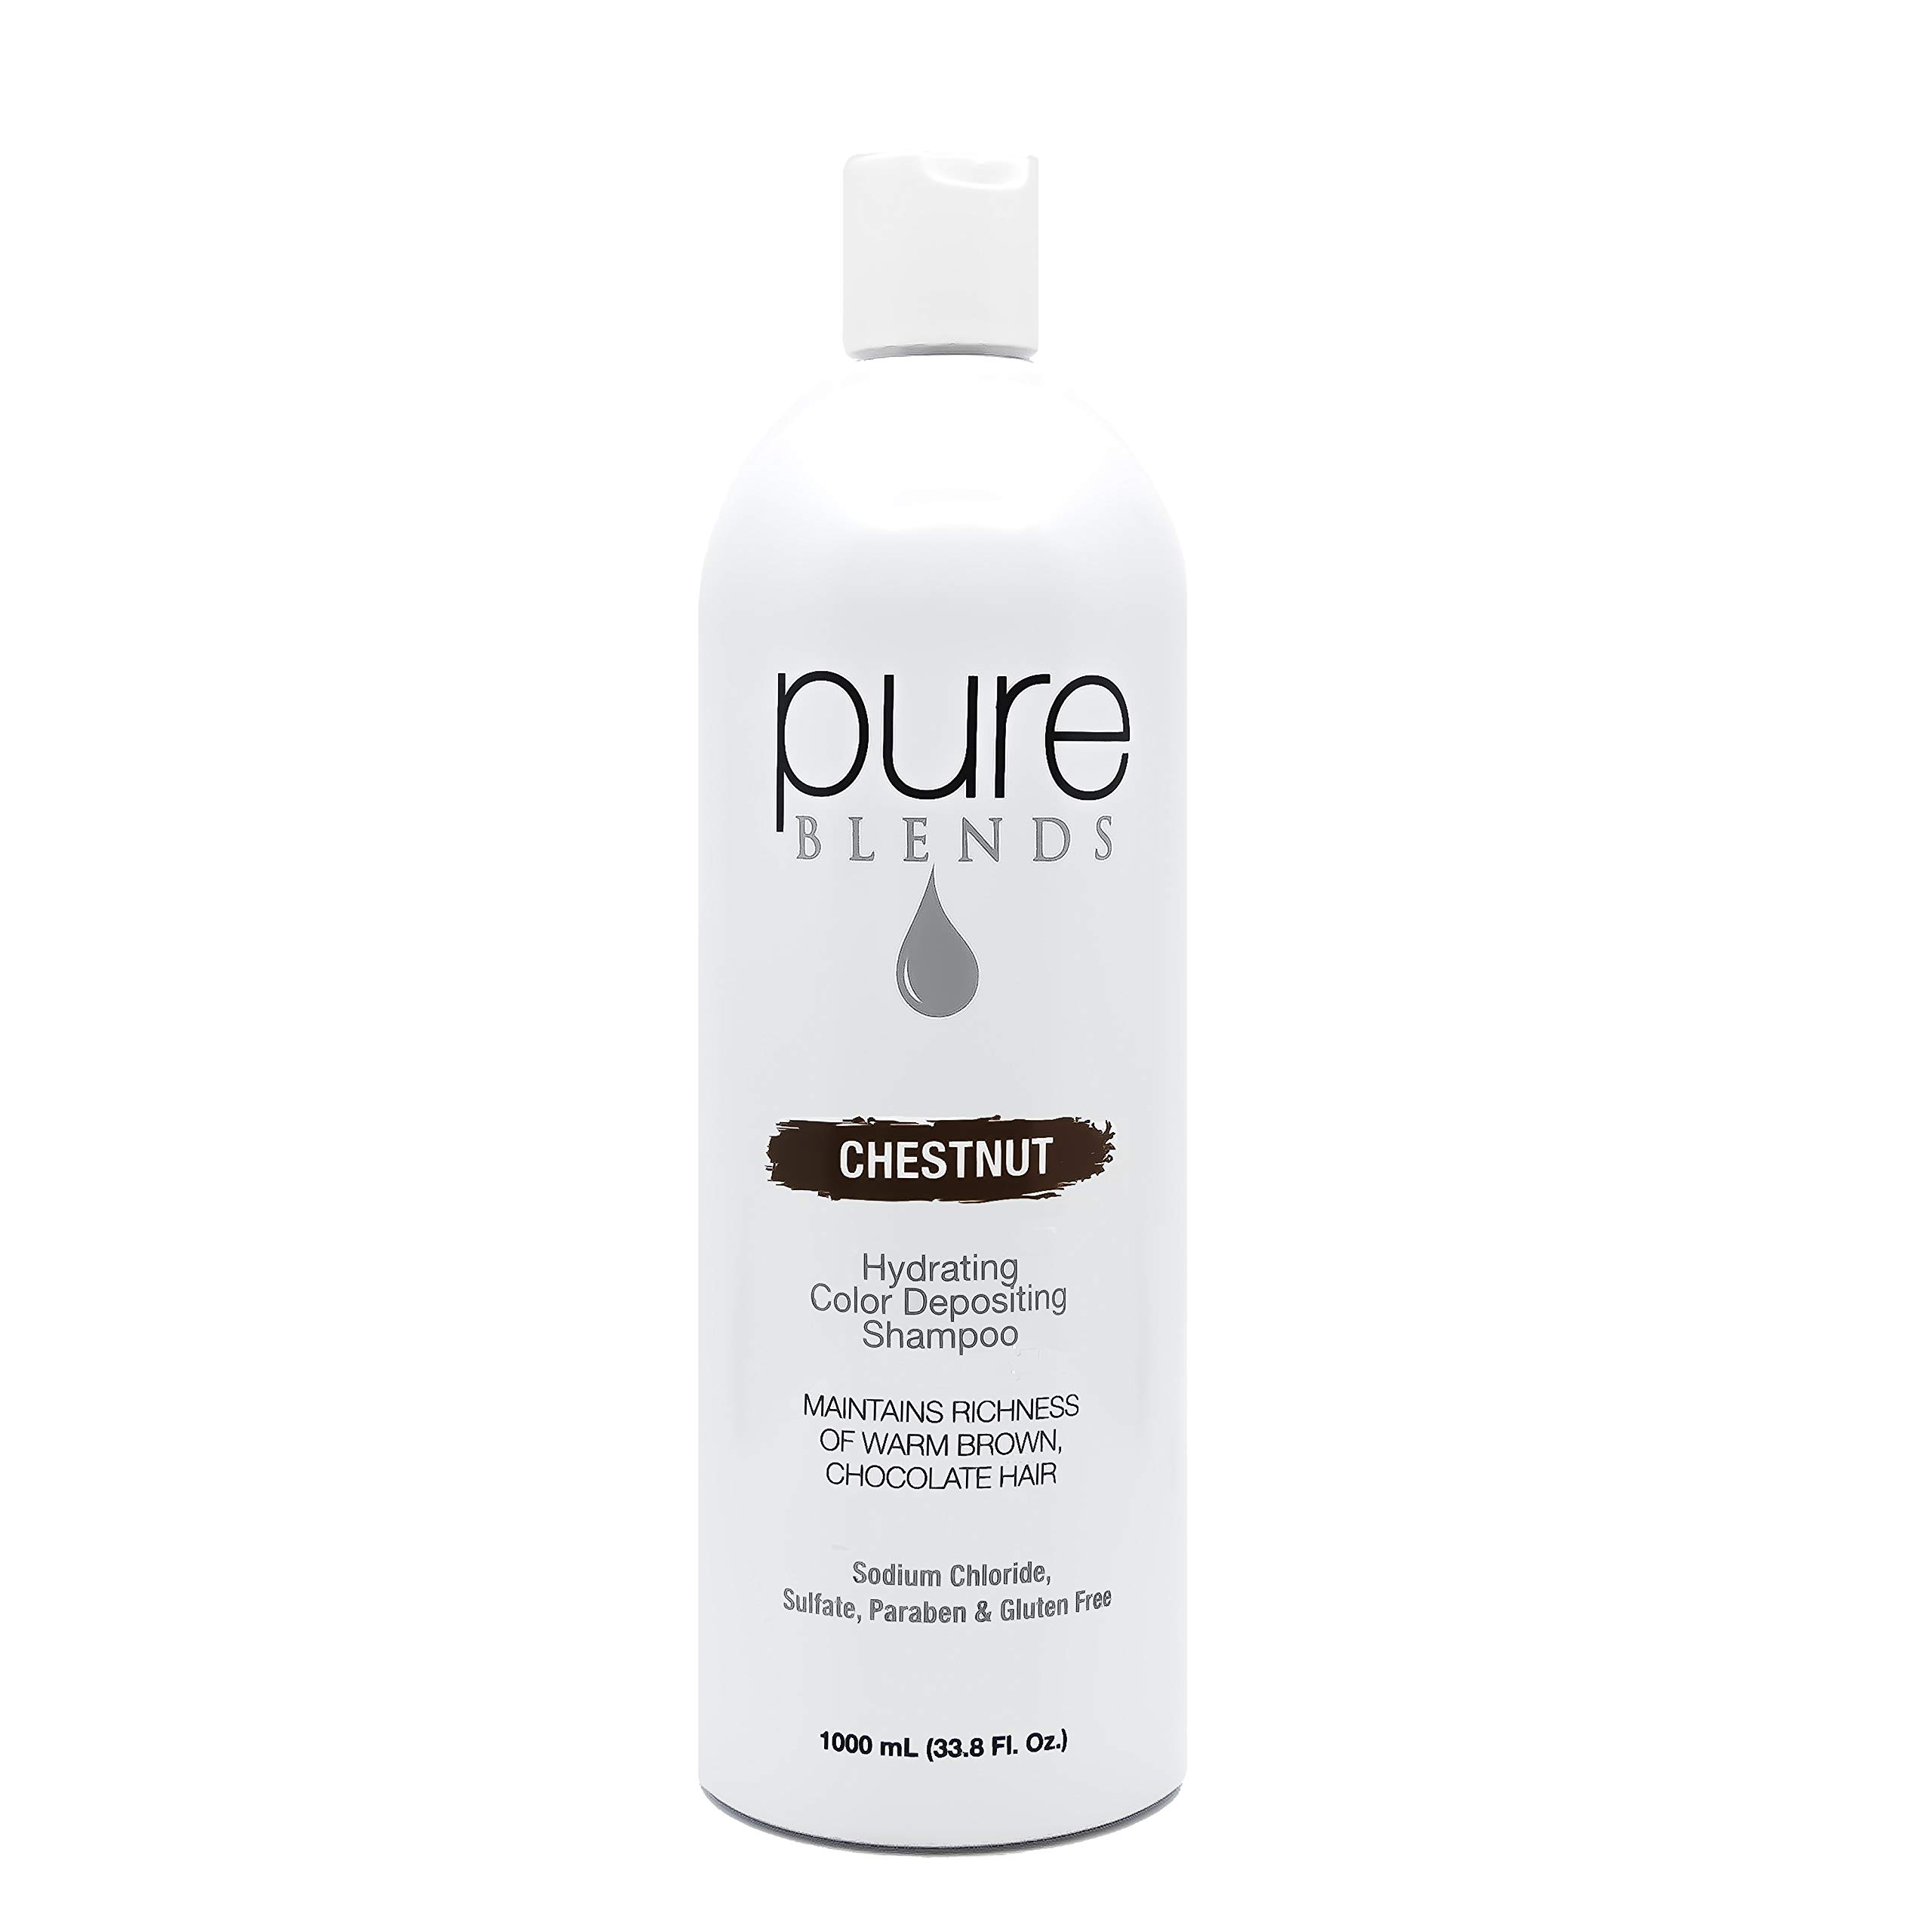 Pure Blends Hydrating Color Depositing Shampoo - Chestnut (Warm Brown Chocolate Tones) 33.8 Ounce - Salon Quality by Pure Blends